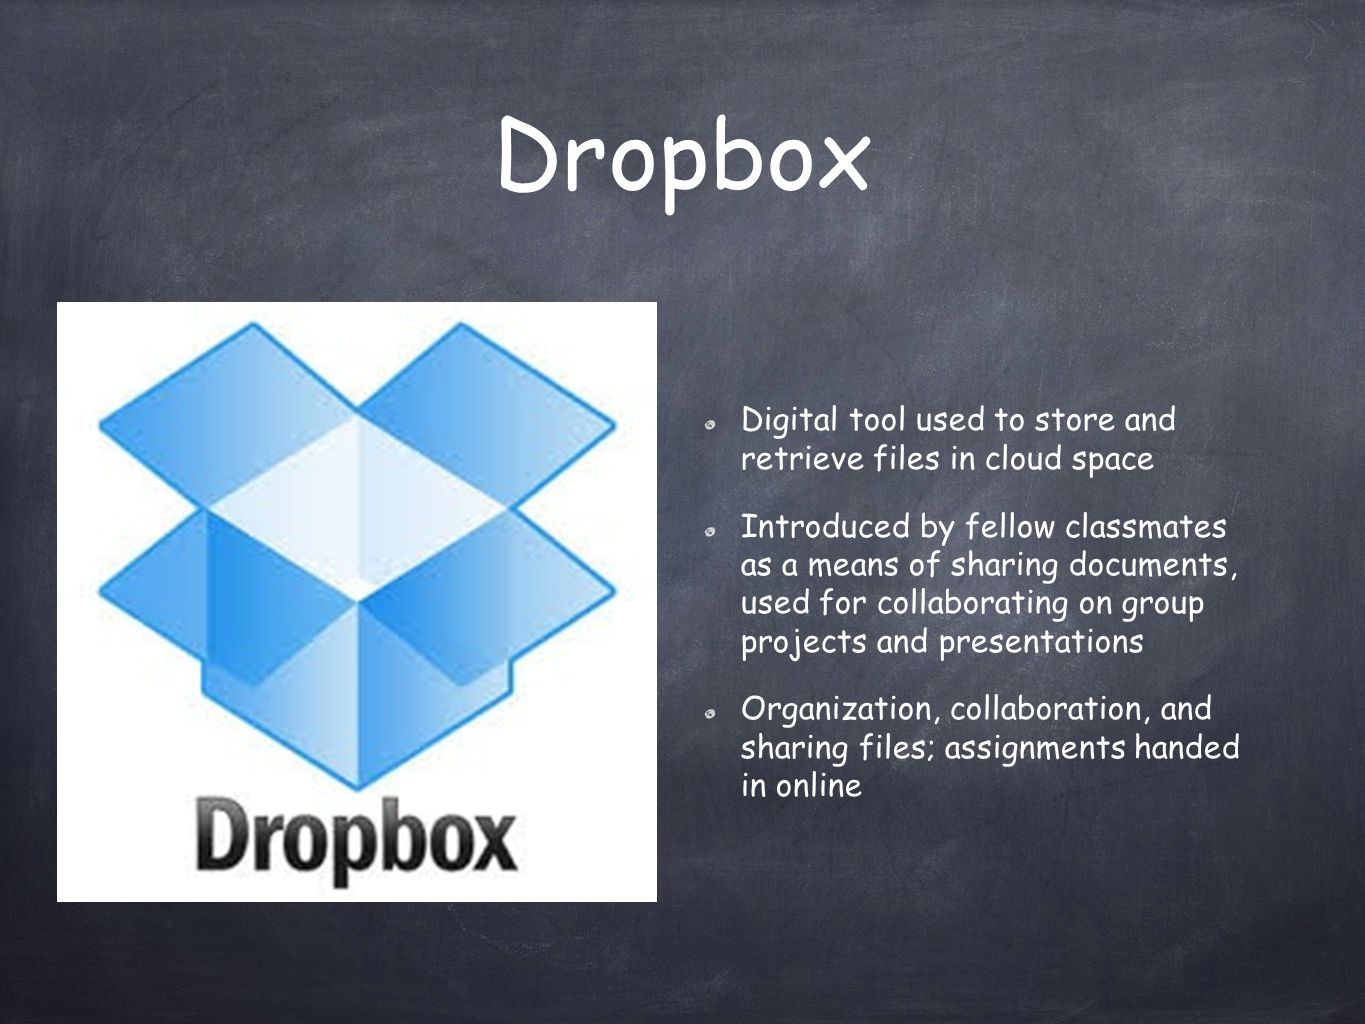 Dropbox Digital tool used to store and retrieve files in cloud space Introduced by fellow classmates as a means of sharing documents, used for collaborating on group projects and presentations Organization, collaboration, and sharing files; assignments handed in online